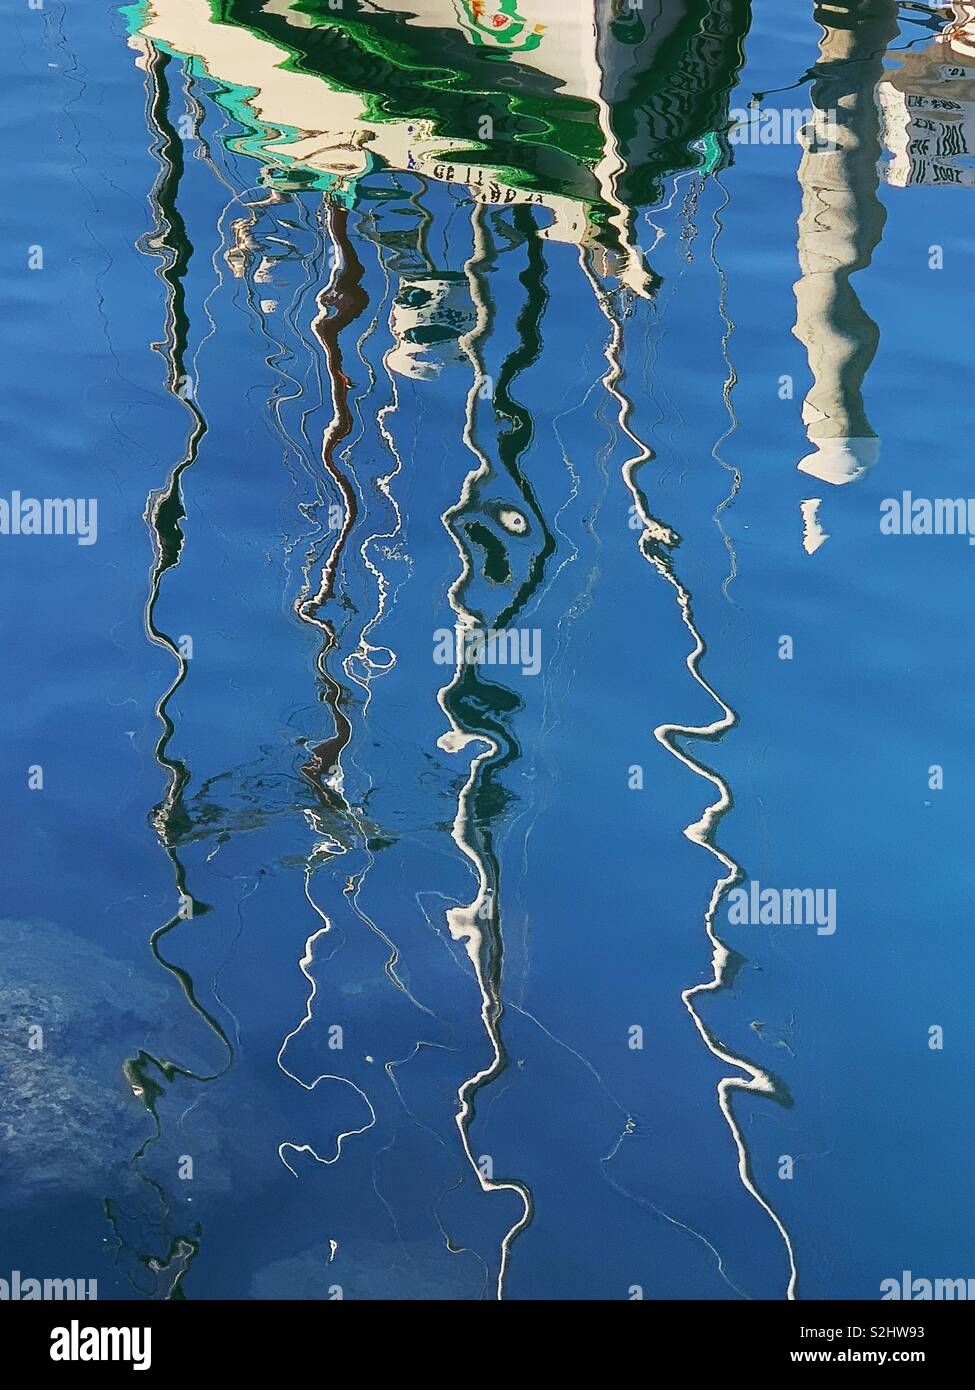 Abstract wiggly lines of white and green boat masts reflecting in bathe blue water of Santa Barbara harbor. Fall 2018 - Stock Image